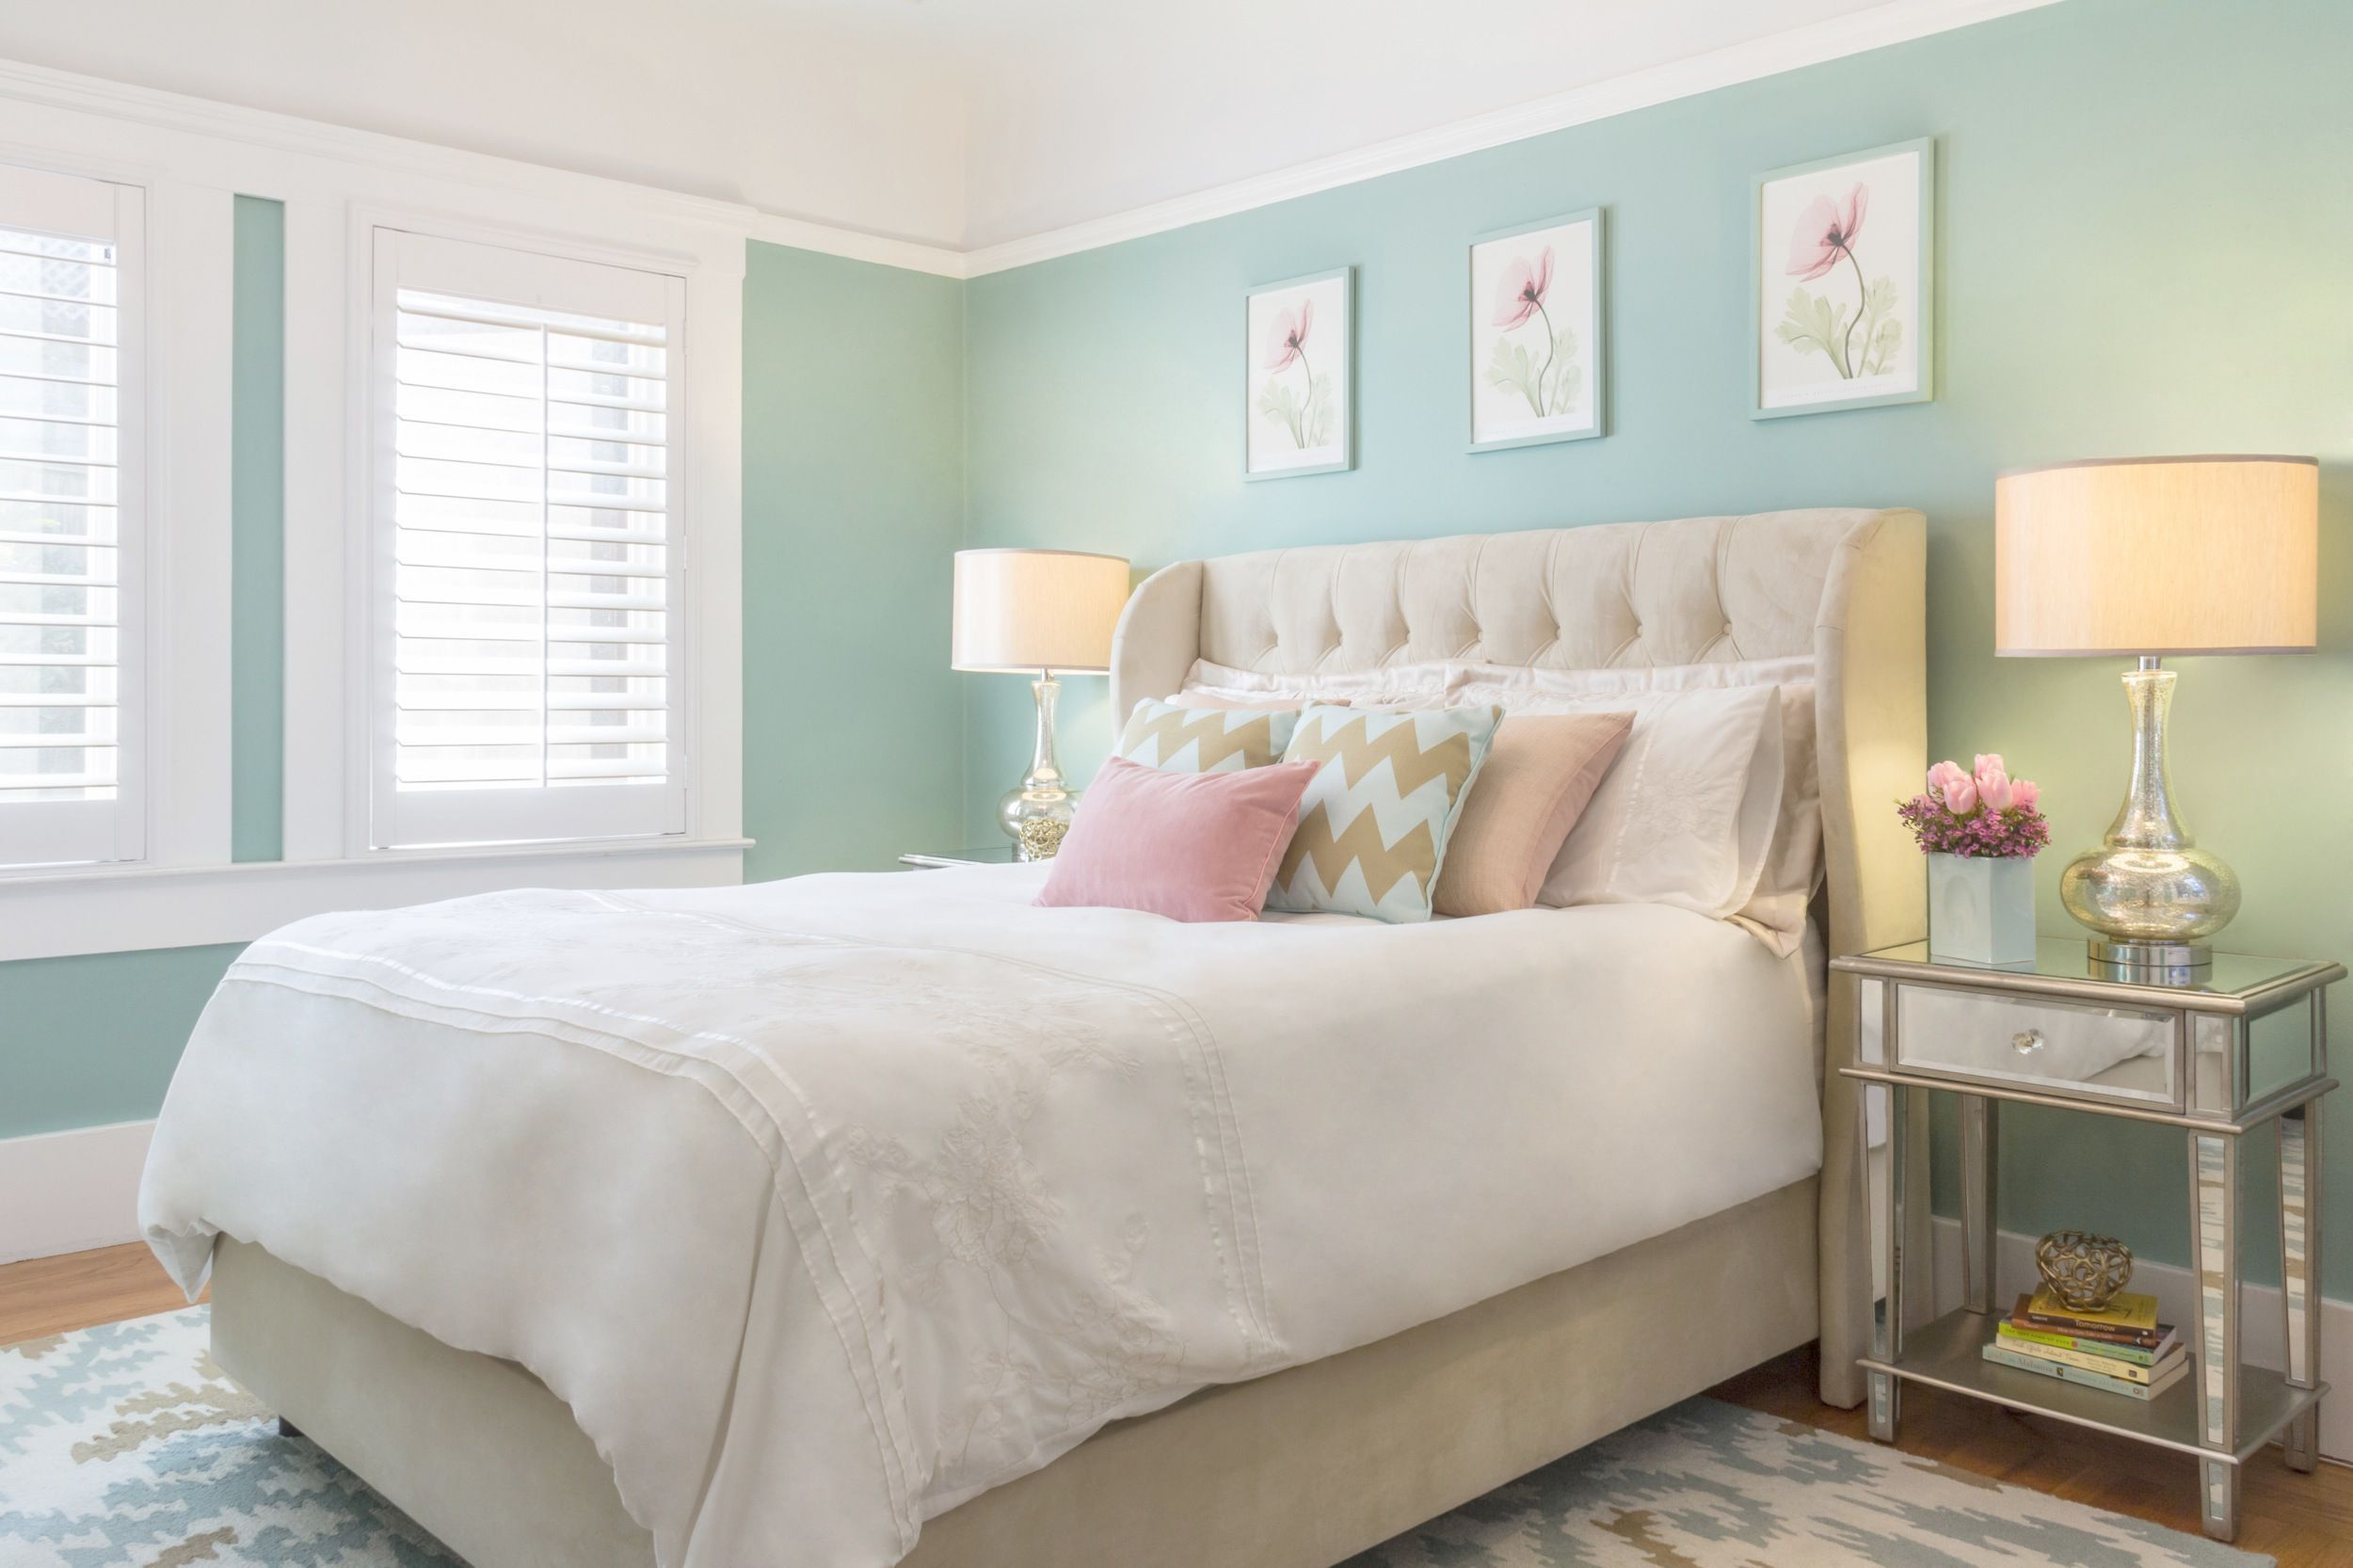 Discover The Best Colors For Small Space Decorating Small